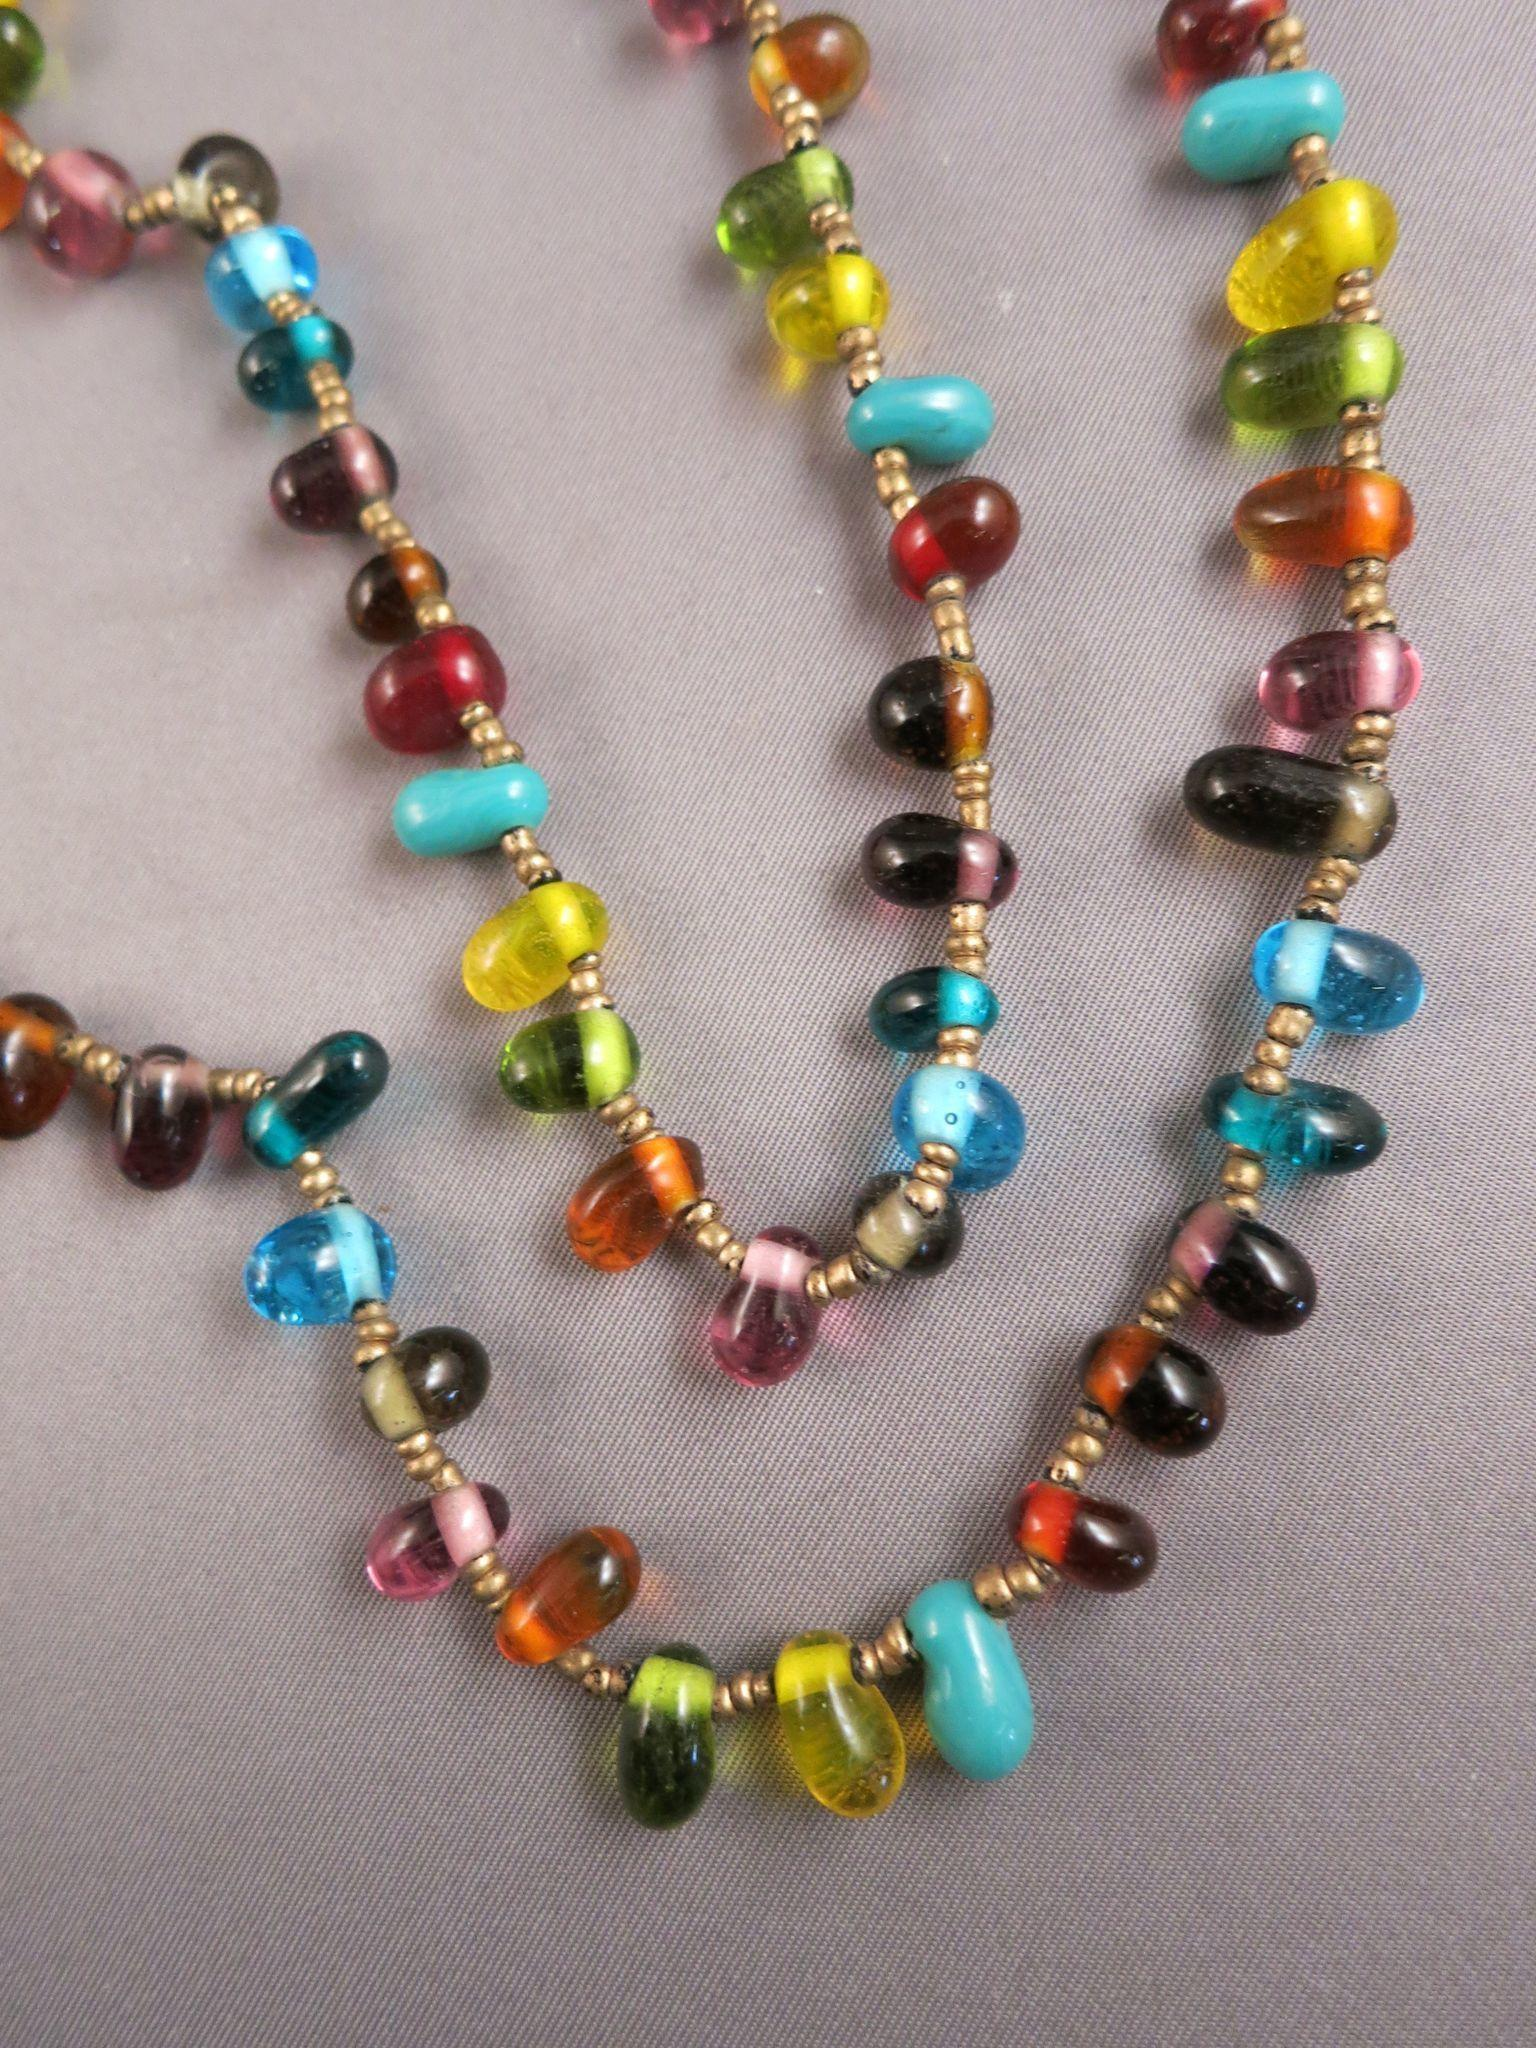 VINTAGE Strand of Glass Beads  Many Colored Necklace  41 inches long